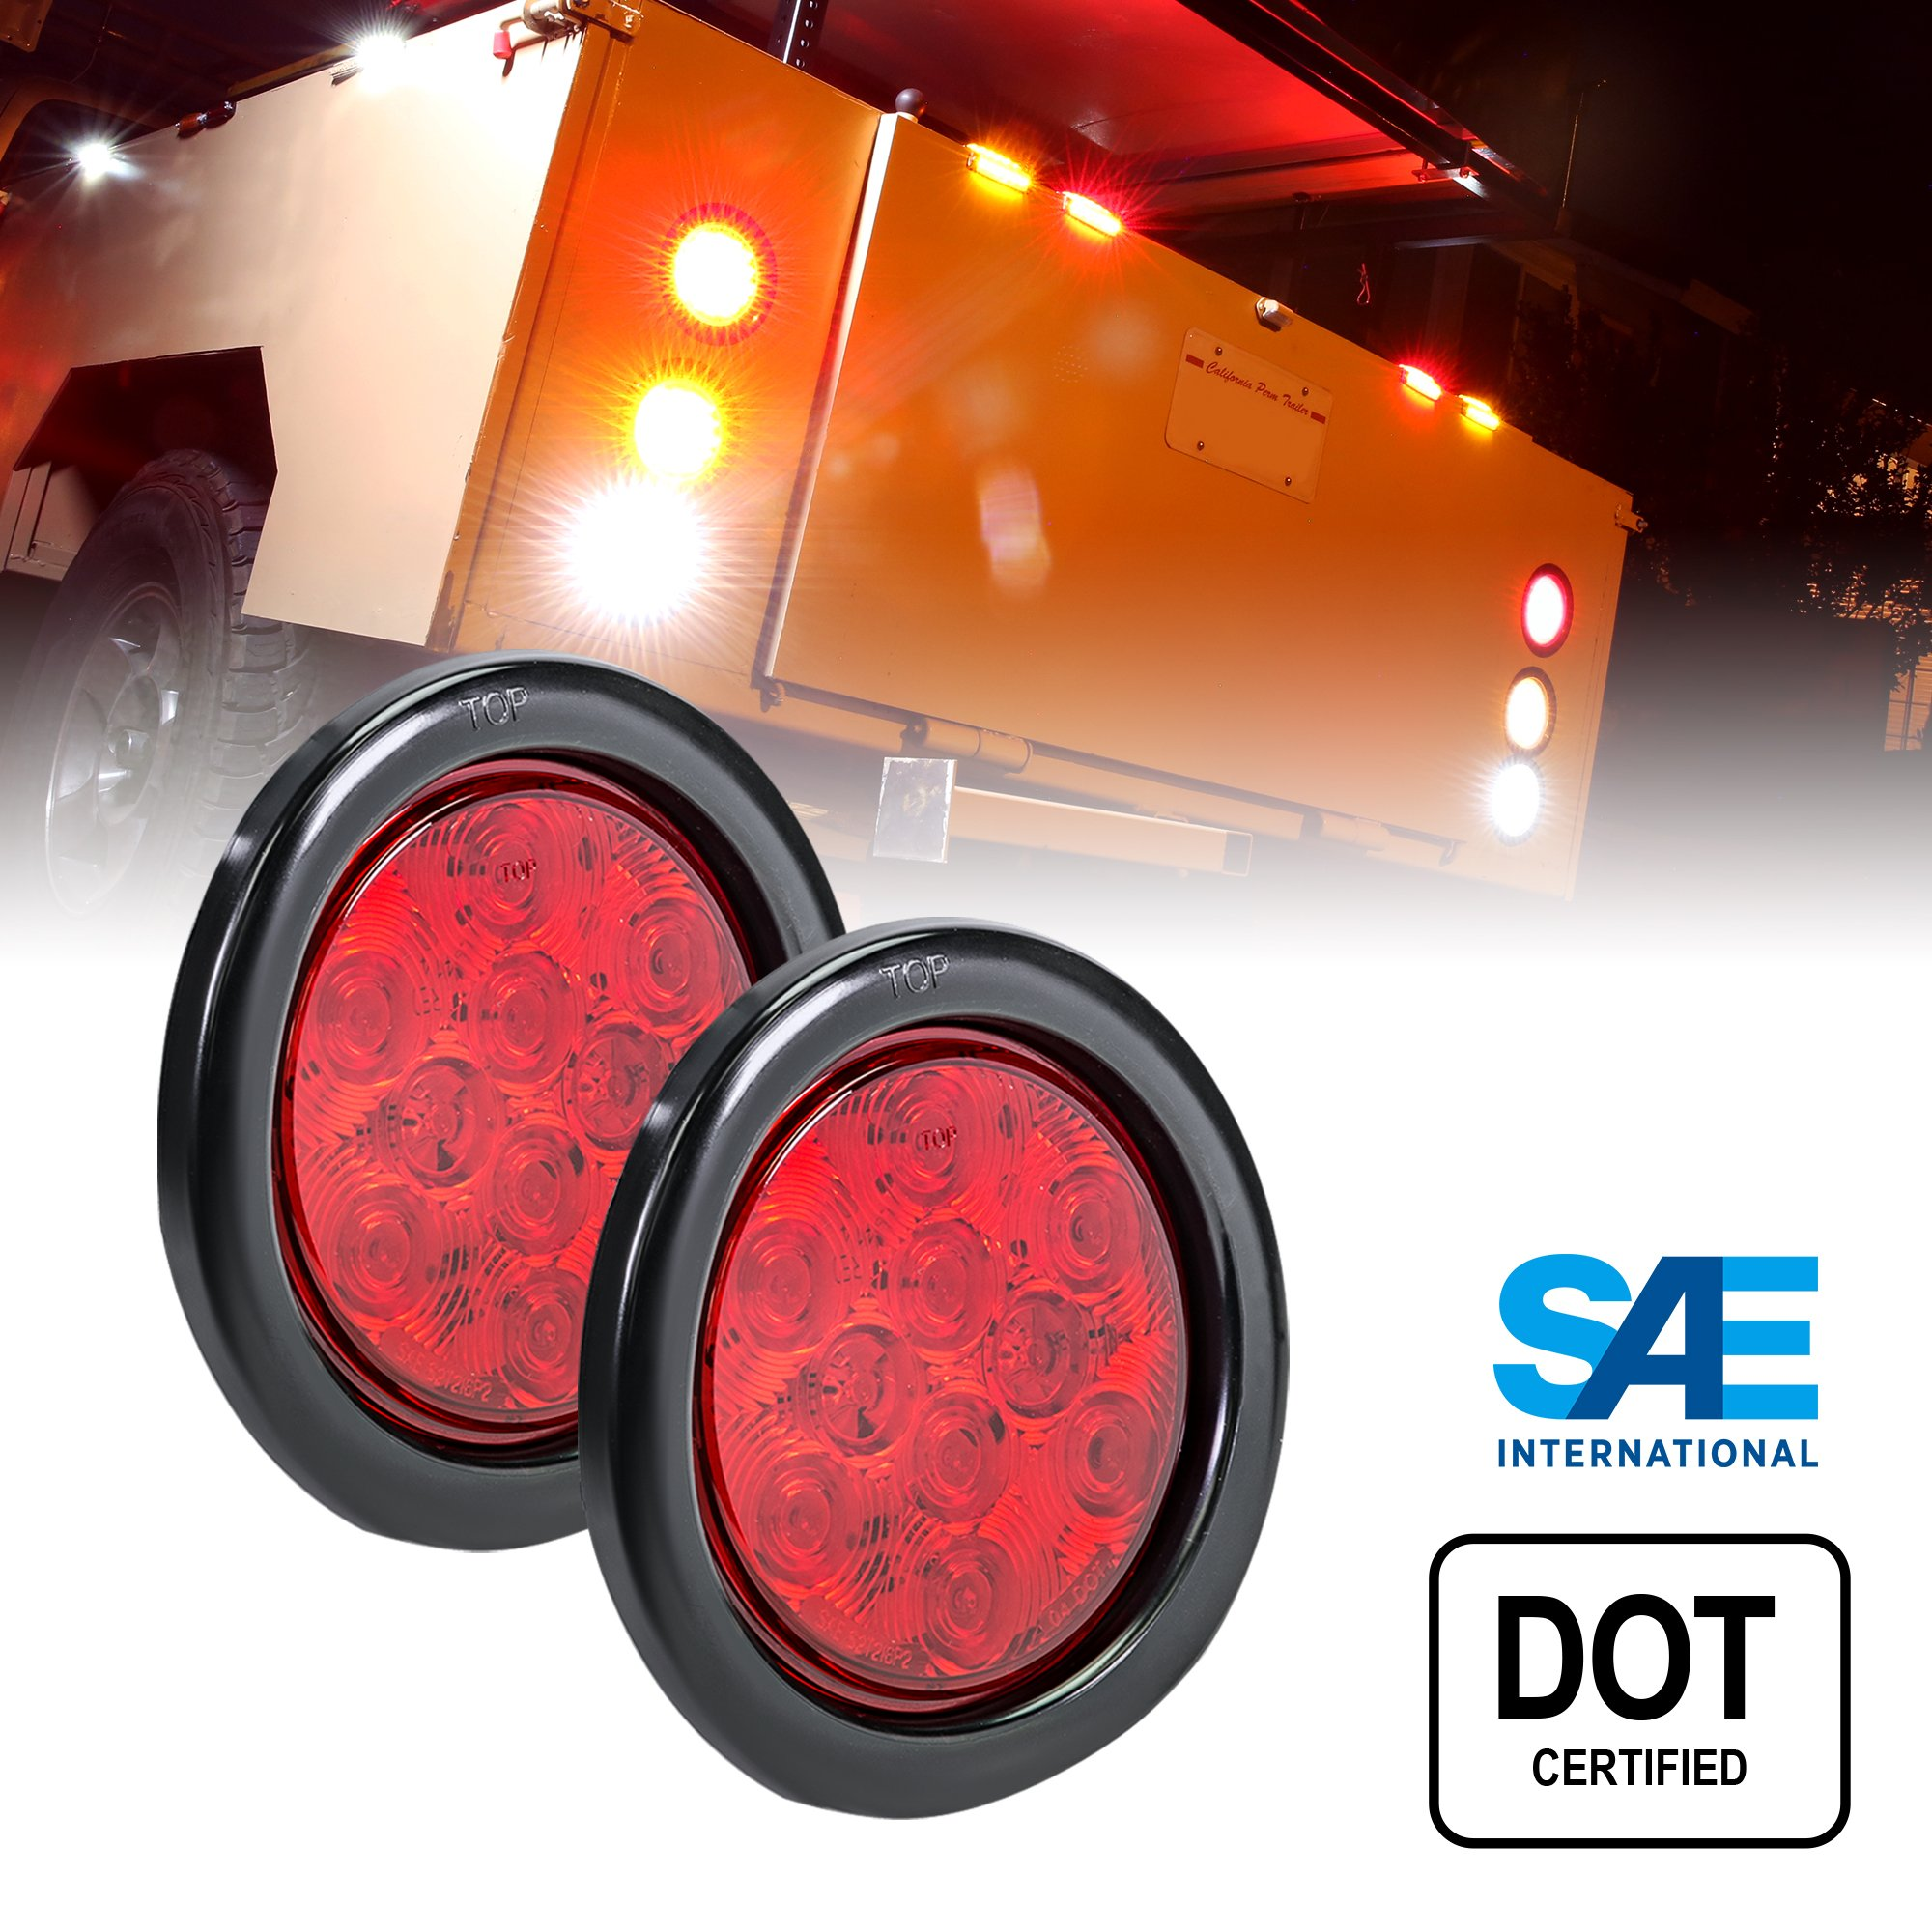 Buy TRUCK LITE CO INC 44326R Stop-Turn-Tail,Round,LED,Red in Cheap